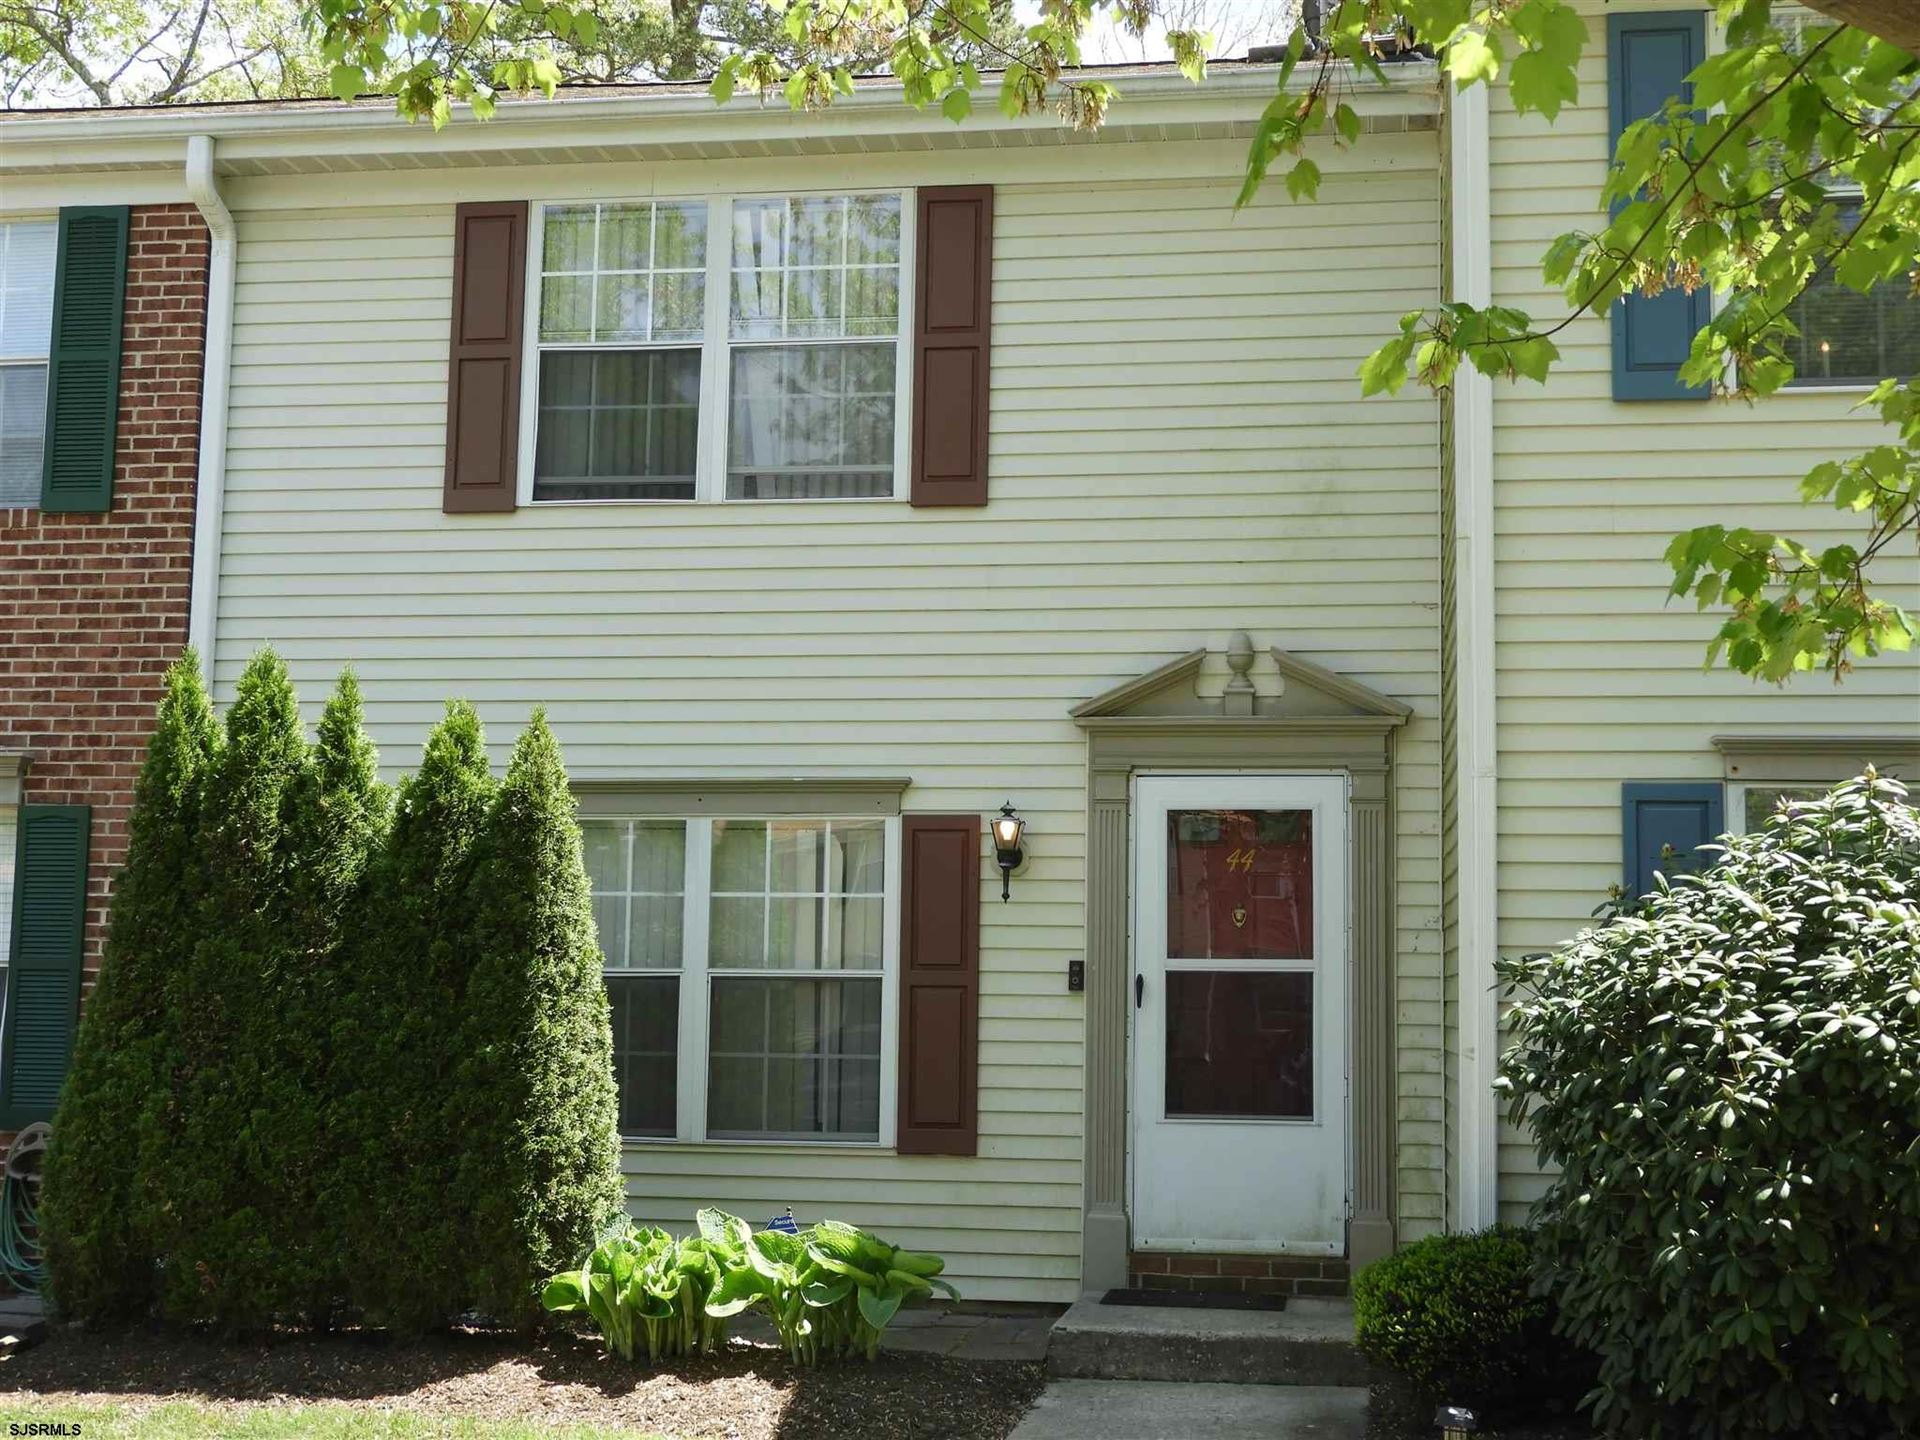 44 Mohave Dr, Galloway, NJ 08205 - #: 550365